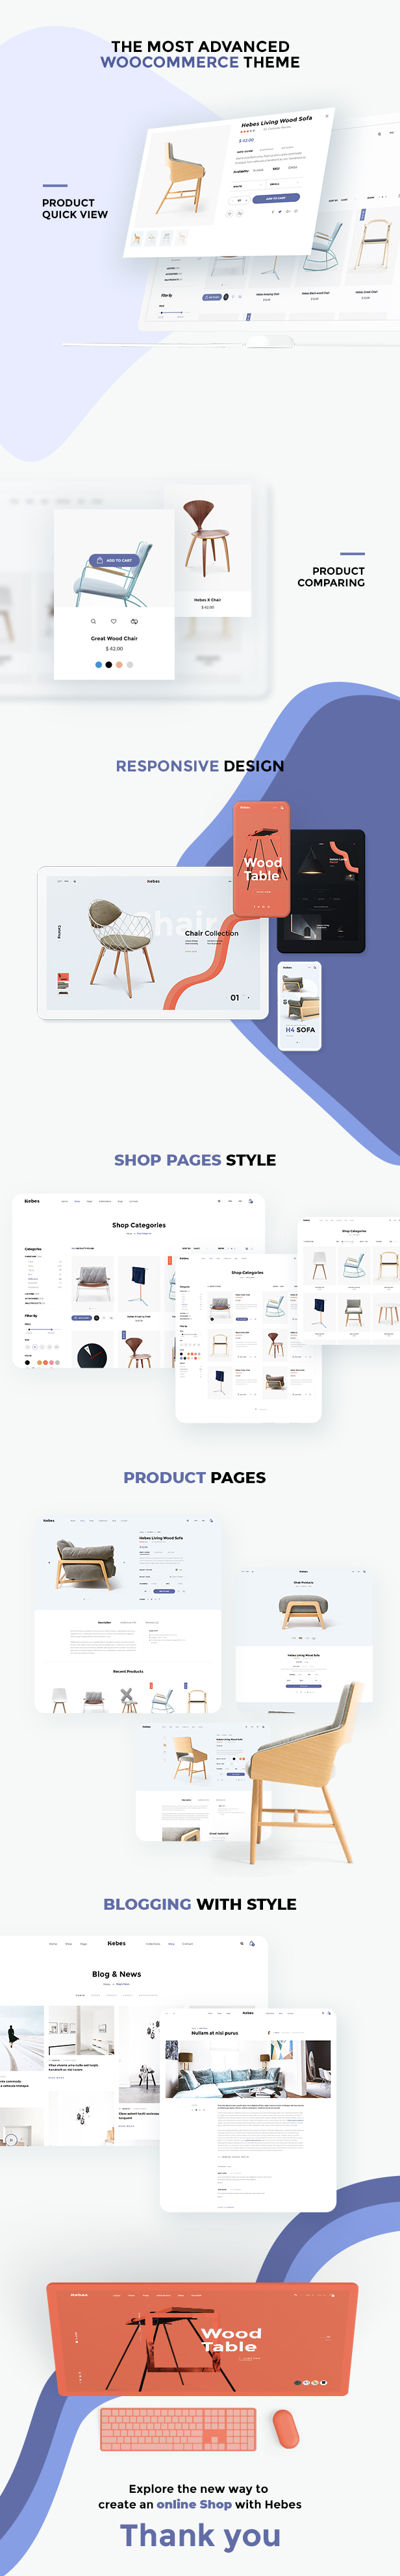 Hebes - MultiPurpose WooCommerce WordPress Theme - 10